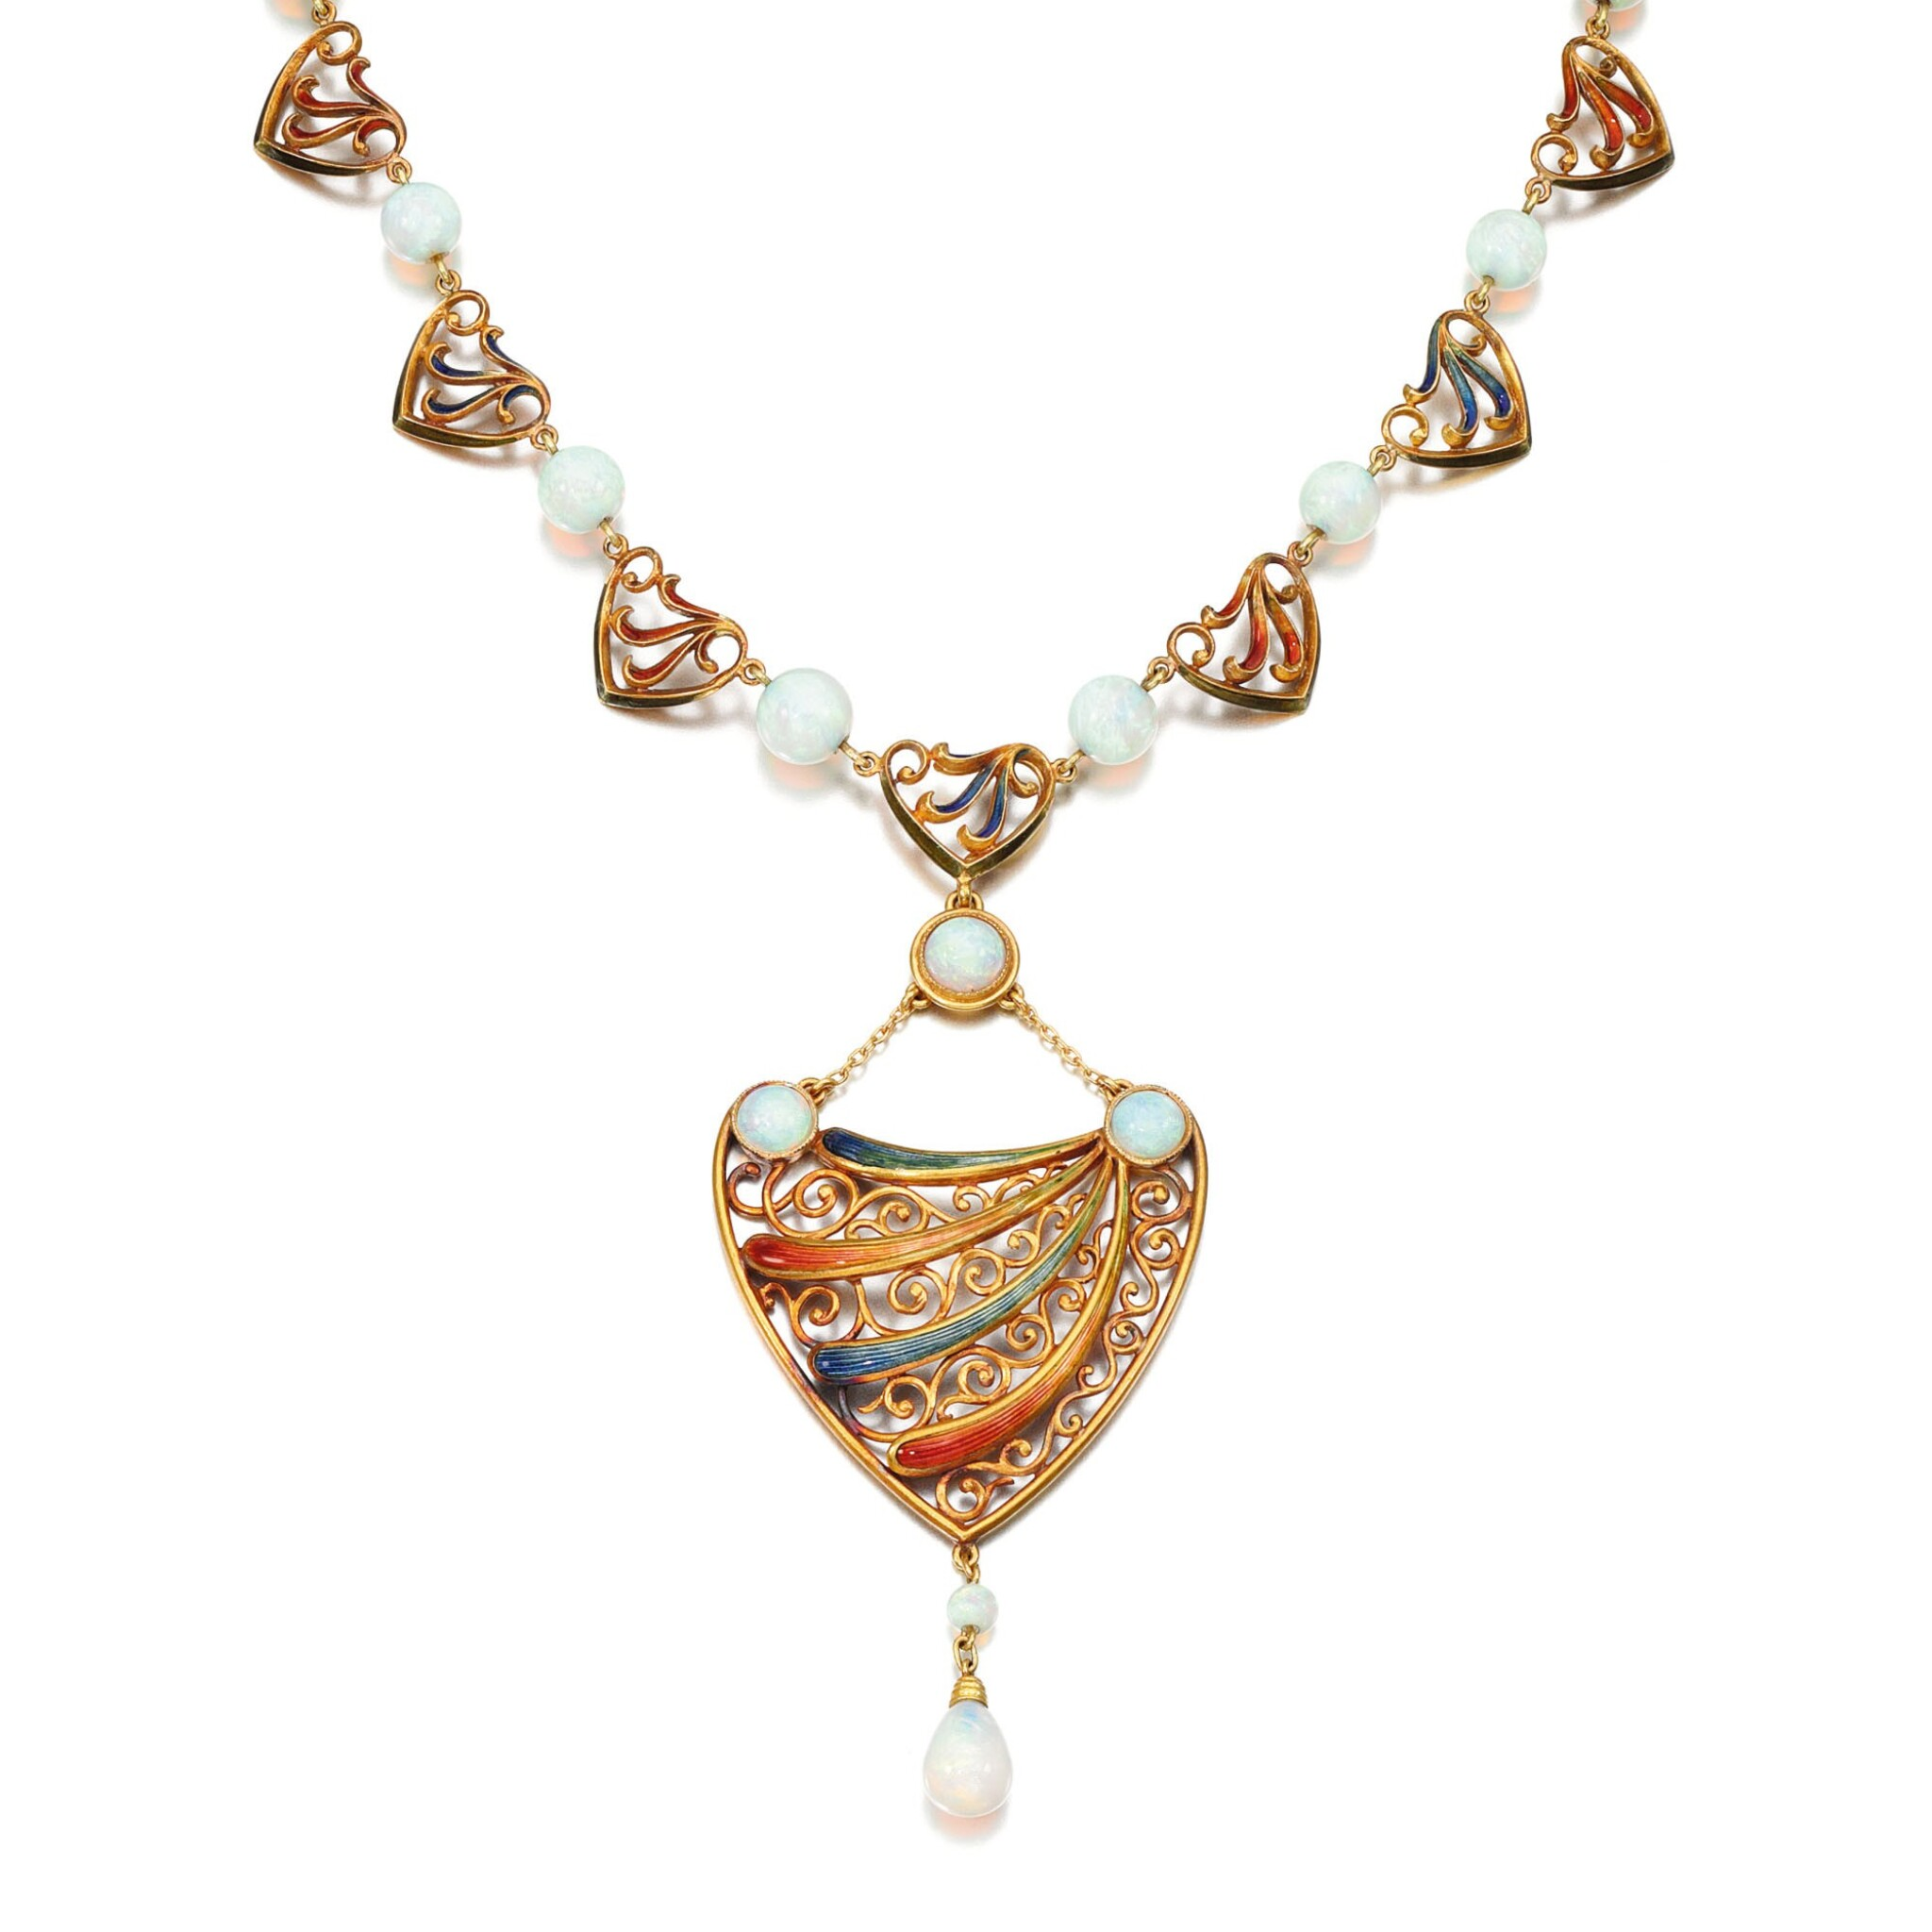 ENAMEL AND OPAL NECKLACE, ALEXIS FALIZE, 1890S